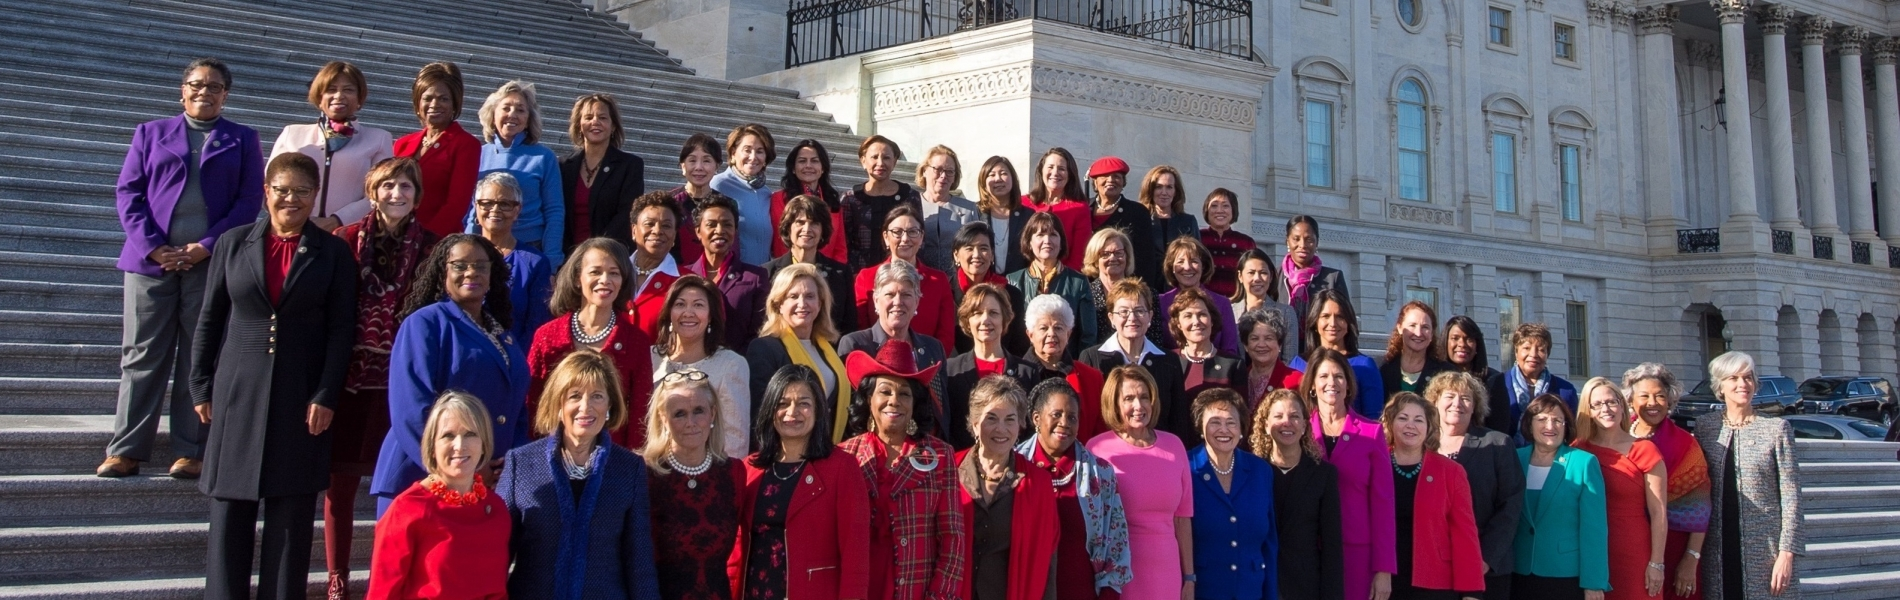 Democratic Women of the 115th Congress